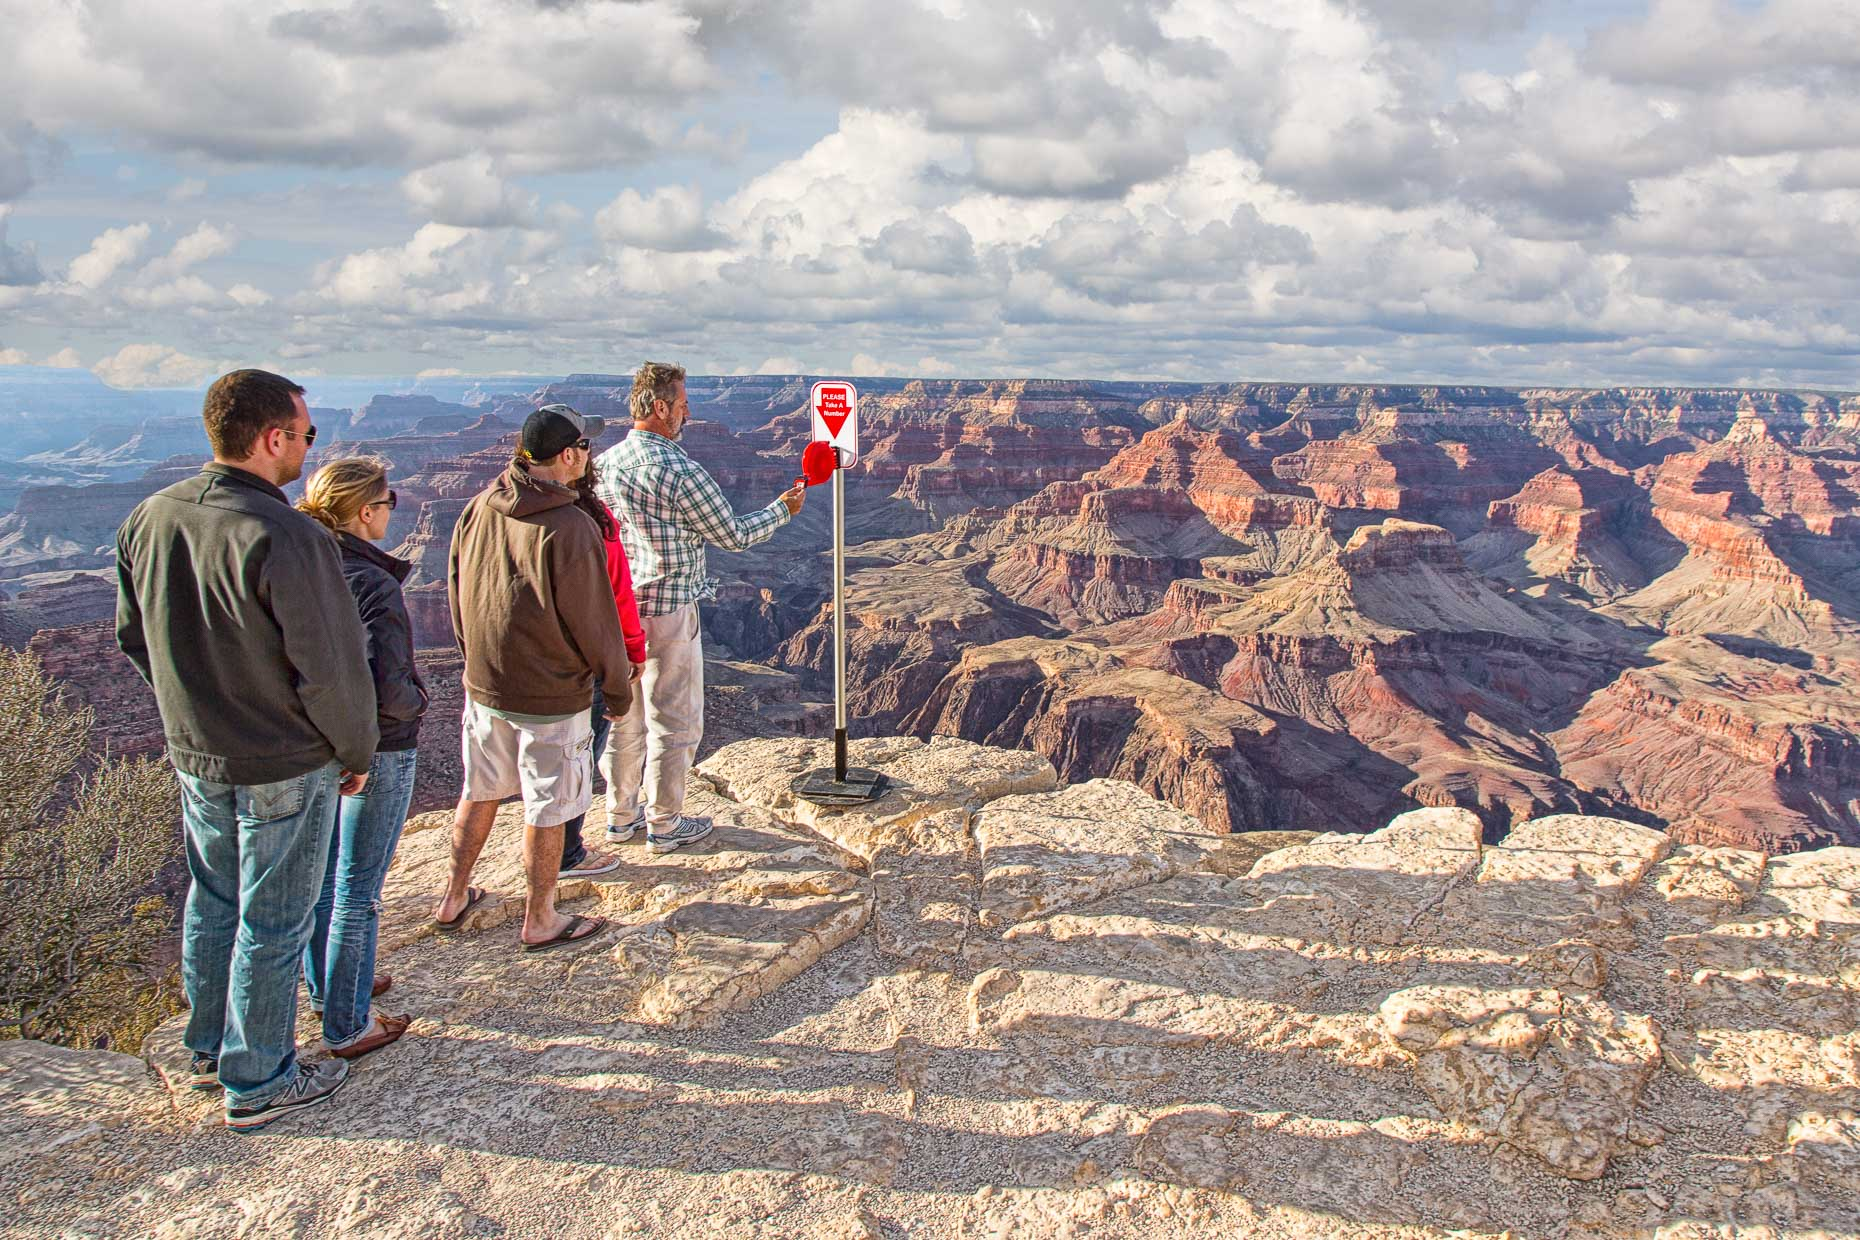 People wait in line to take a number from ticket machine at edge of the Grand Canyon.